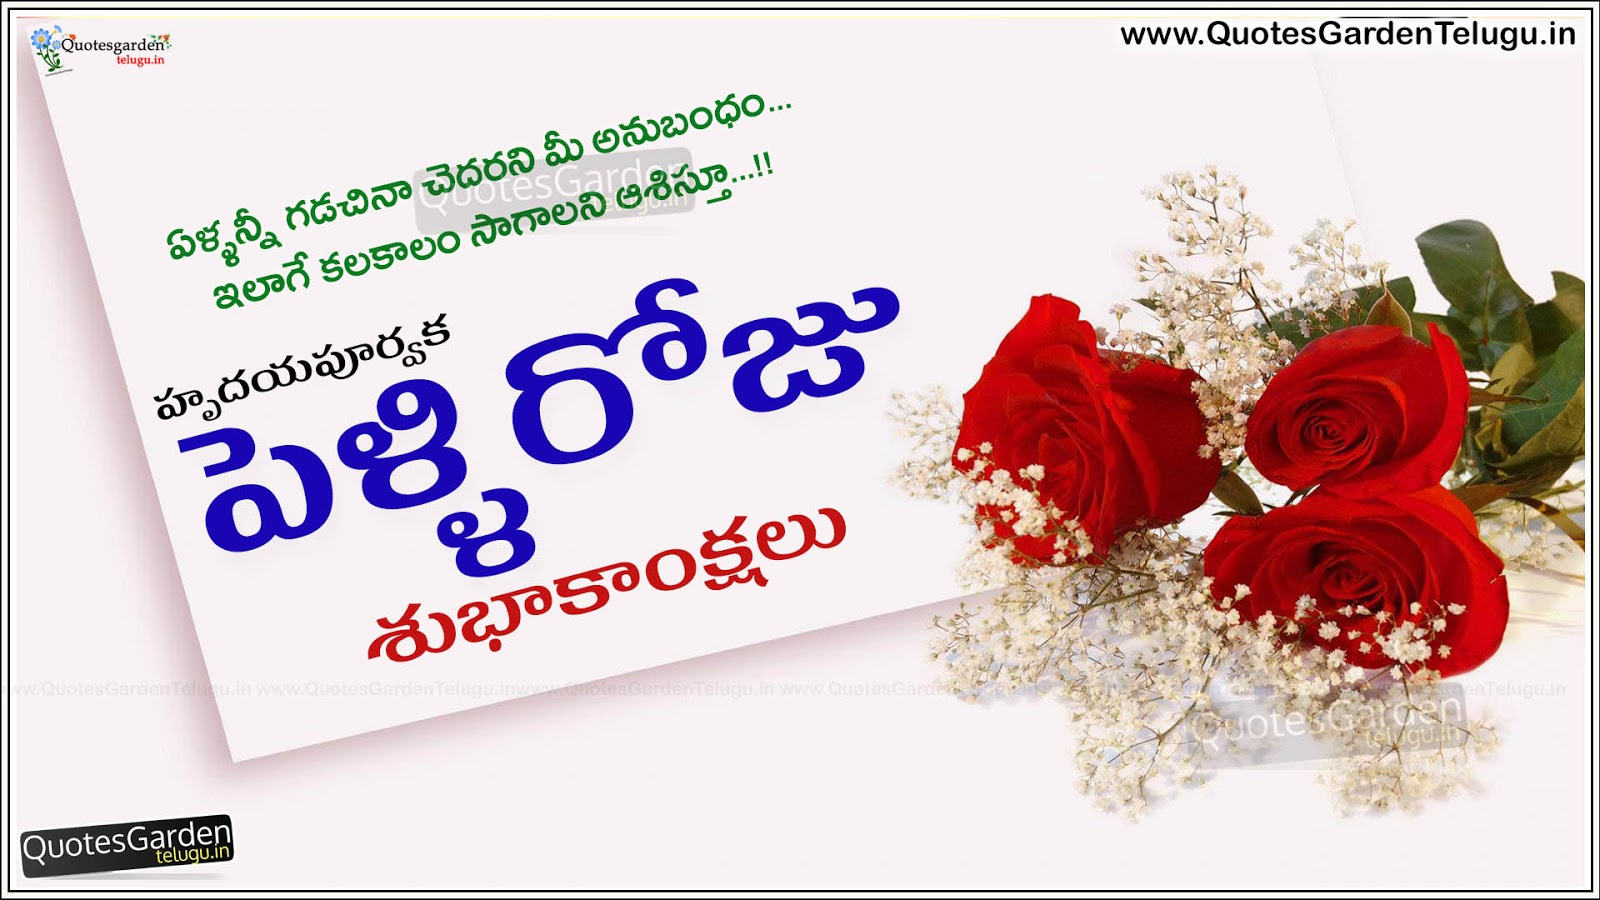 Happy Marriage Day Greetings Wishes In Telugu Quotes Garden Telugu Telugu Quotes English Quotes Hindi Quotes